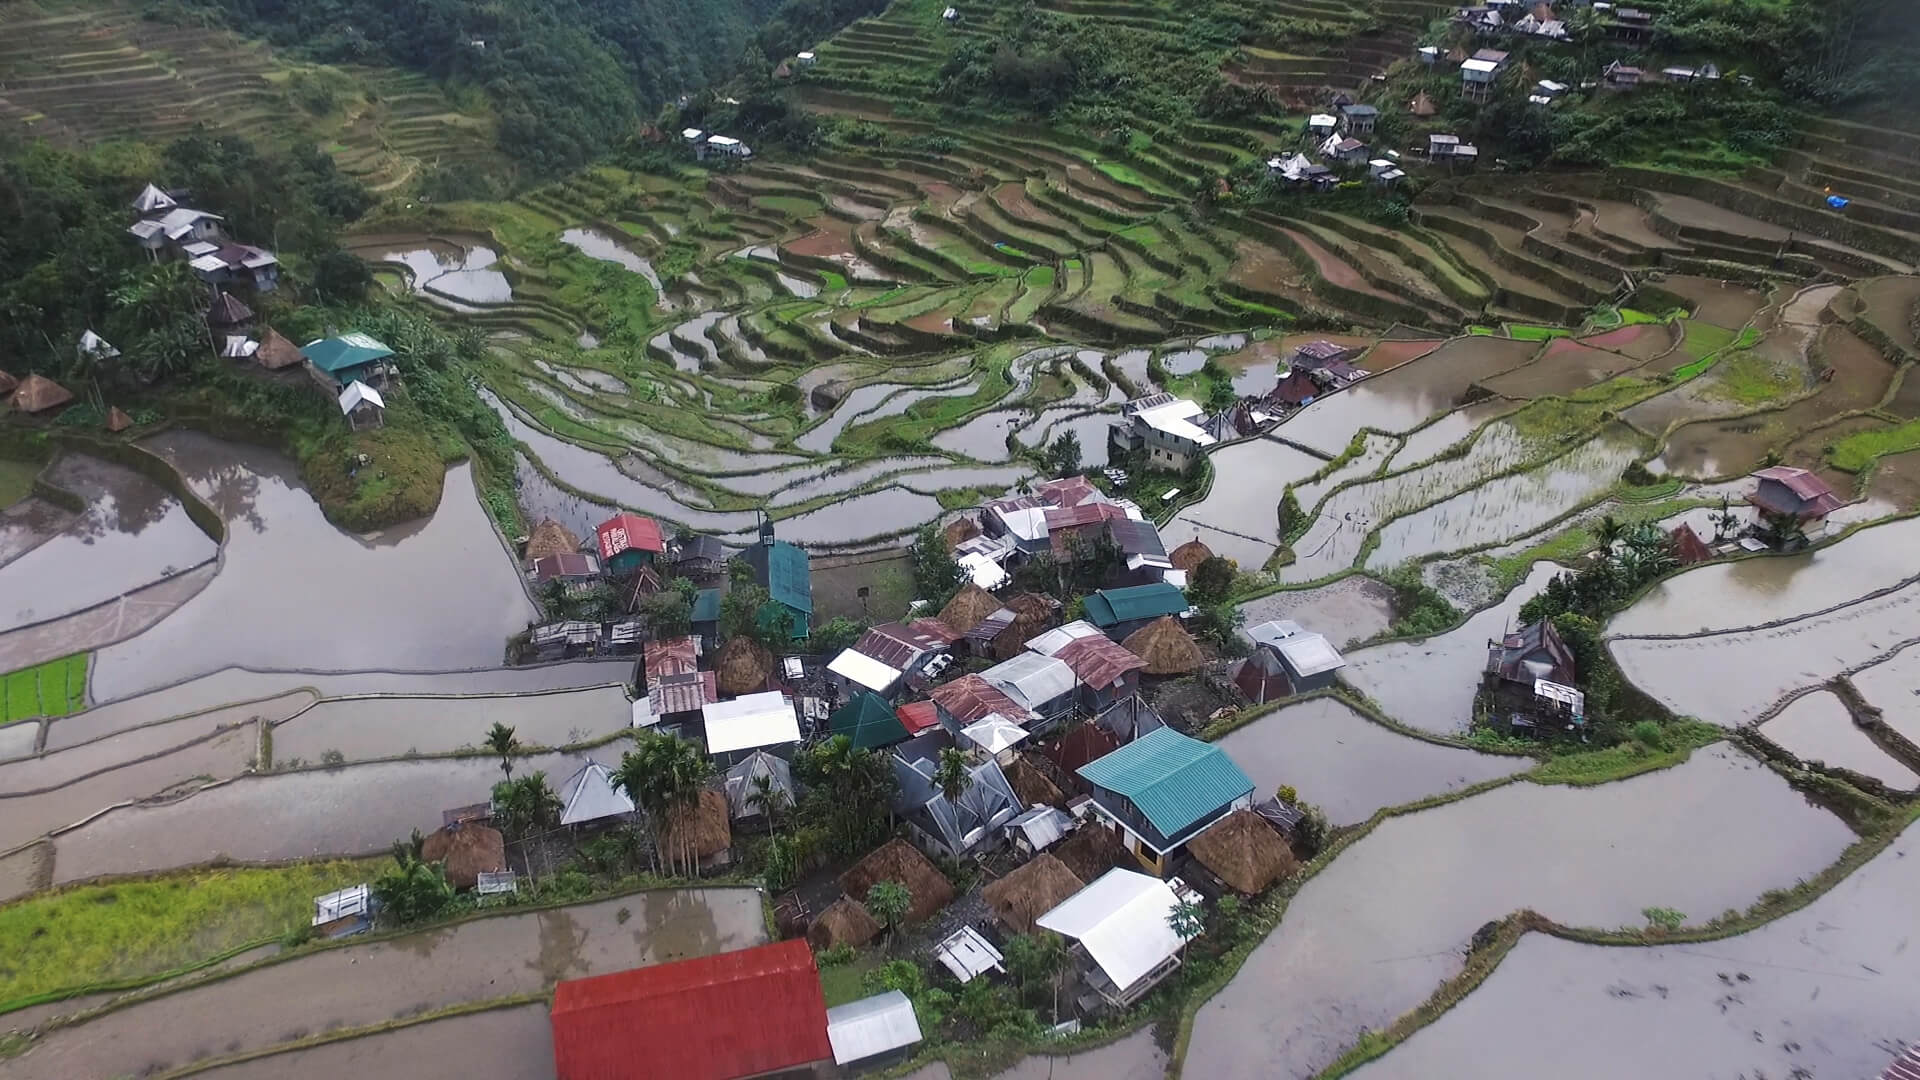 Birds eye batad rice terraces